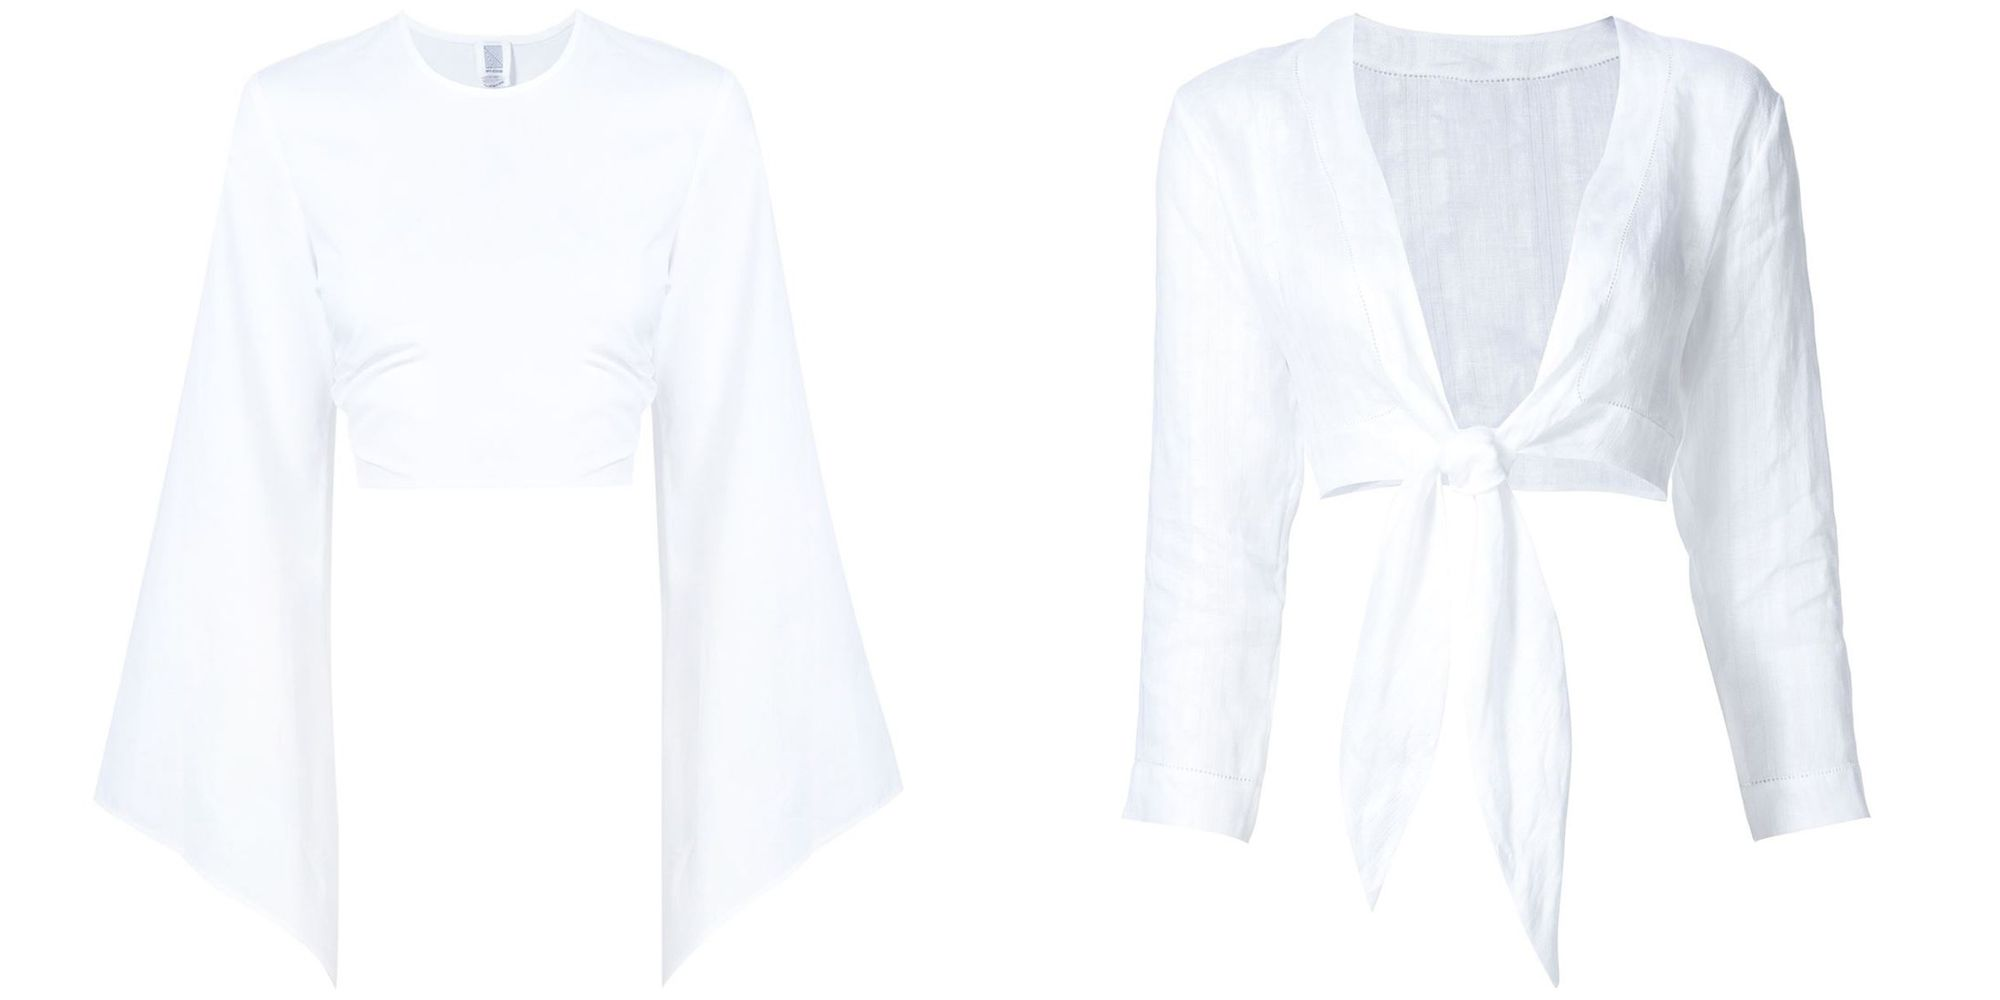 "<p>From bell-sleeve to tie-waist, the white crop top is your anything-but-basic summer basic. </p><p><em><br></em></p><p><em><strong>Rosie Assoulin</strong> top, $795, <strong><a href=""https://shop.harpersbazaar.com/designers/r/rosie-assoulin/poplin-bell-top-9161.html"" target=""_blank"">shopBAZAAR.com</a></strong>&#x3B; <strong>Lisa Marie Fernandez </strong>blouse, $415, <strong><a href=""https://shop.harpersbazaar.com/designers/l/lisa-marie-fernandez/tie-voile-blouse-9156.html"" target=""_blank"">shopBAZAAR.com</a></strong></em><em>.</em><br></p>"